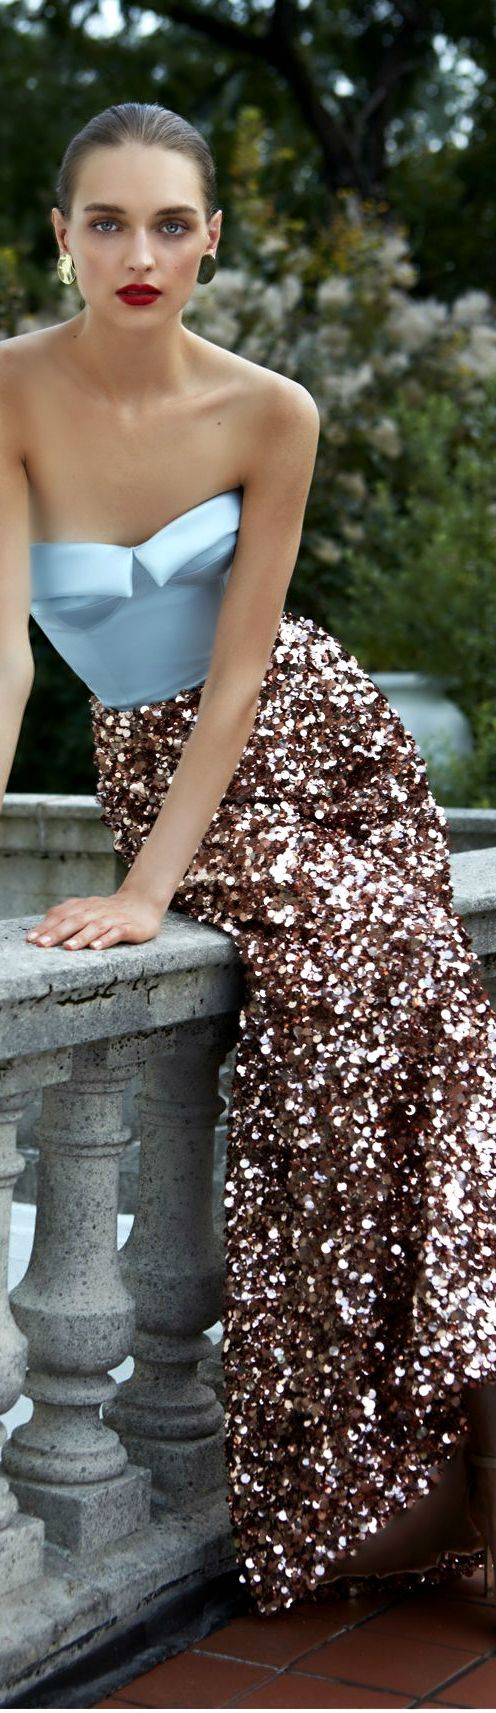    Rita and Phill specializes in custom skirts. Follow Rita and Phill for more sequin skirt images. https://www.pinterest.com/ritaandphill/sequin-skirts